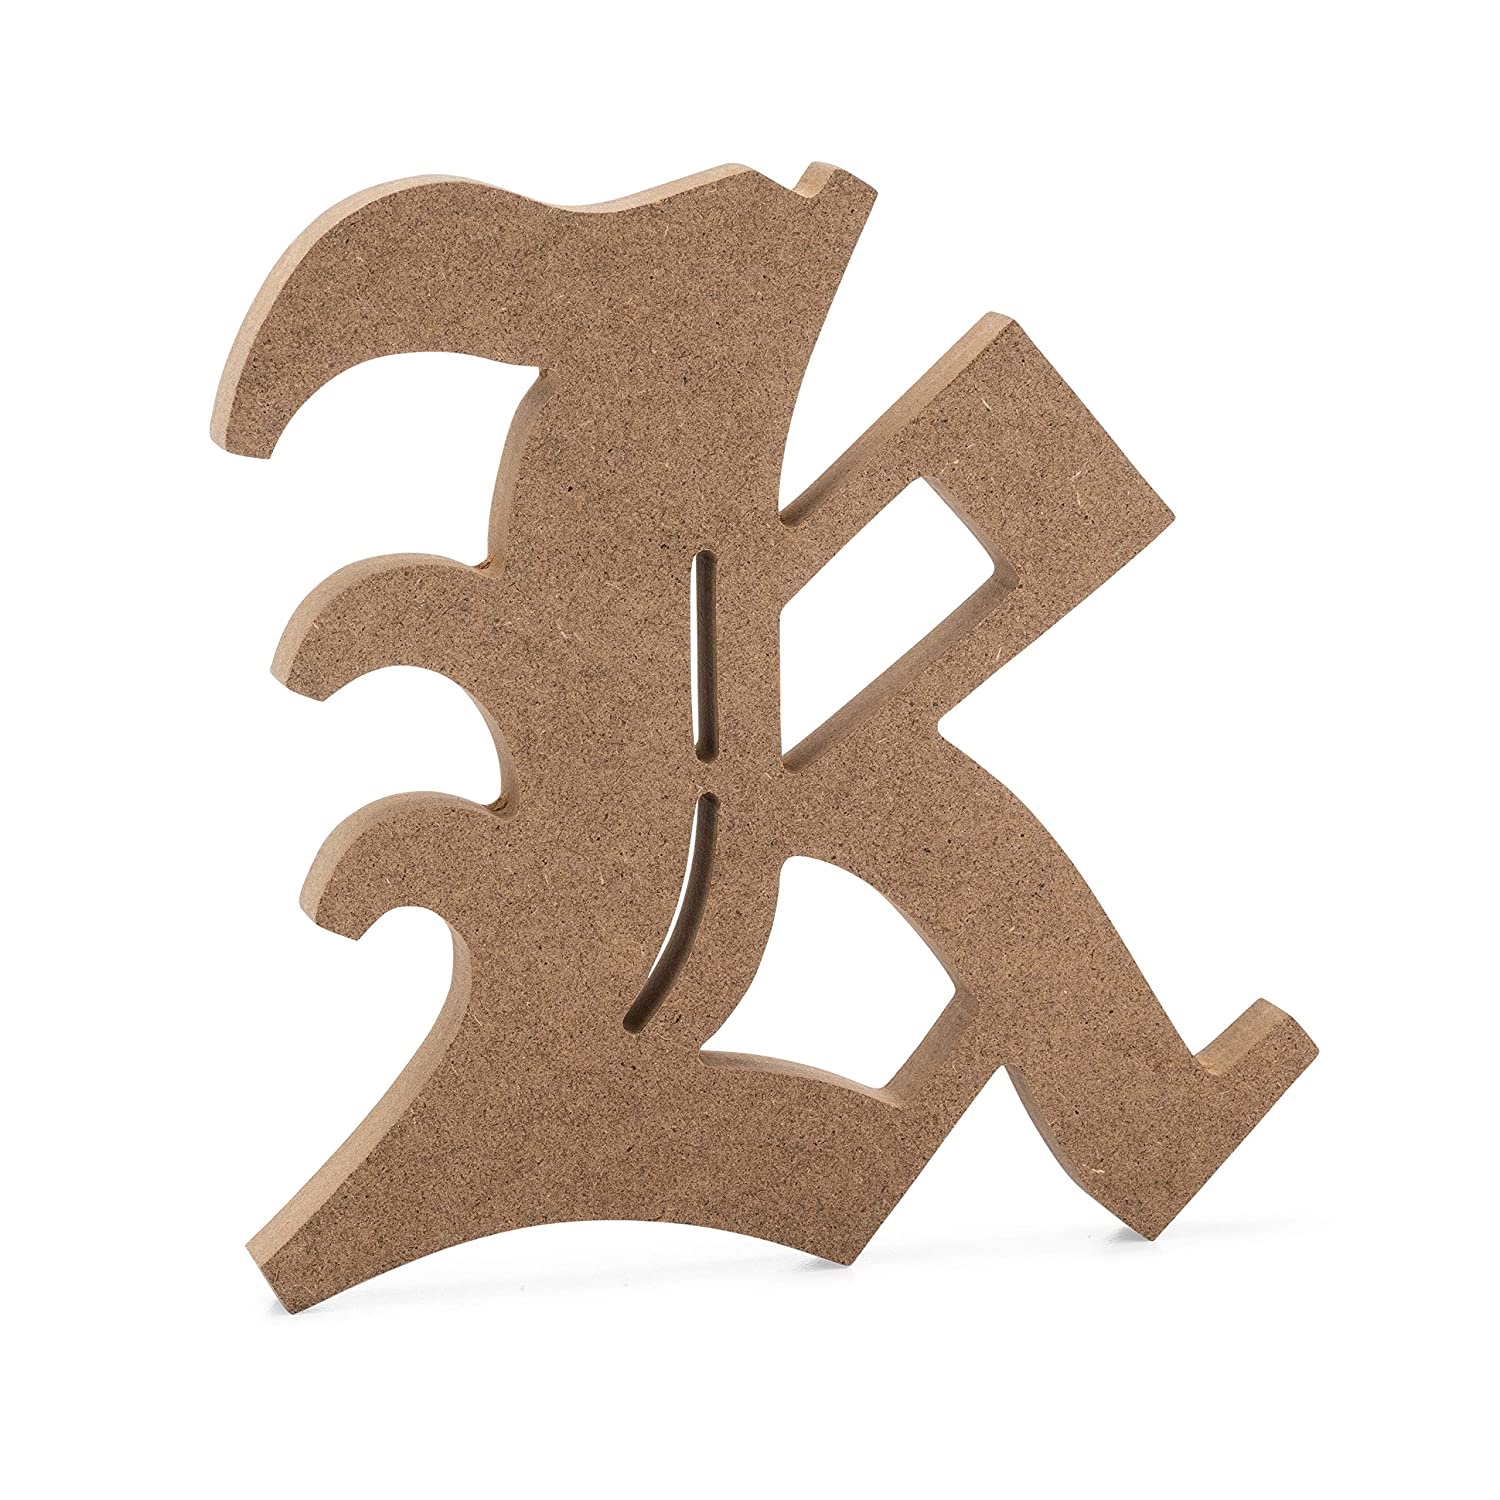 6 inch, C 6 Old English Wooden Letter C JoePauls Crafts Premium MDF Wood Wall Letters